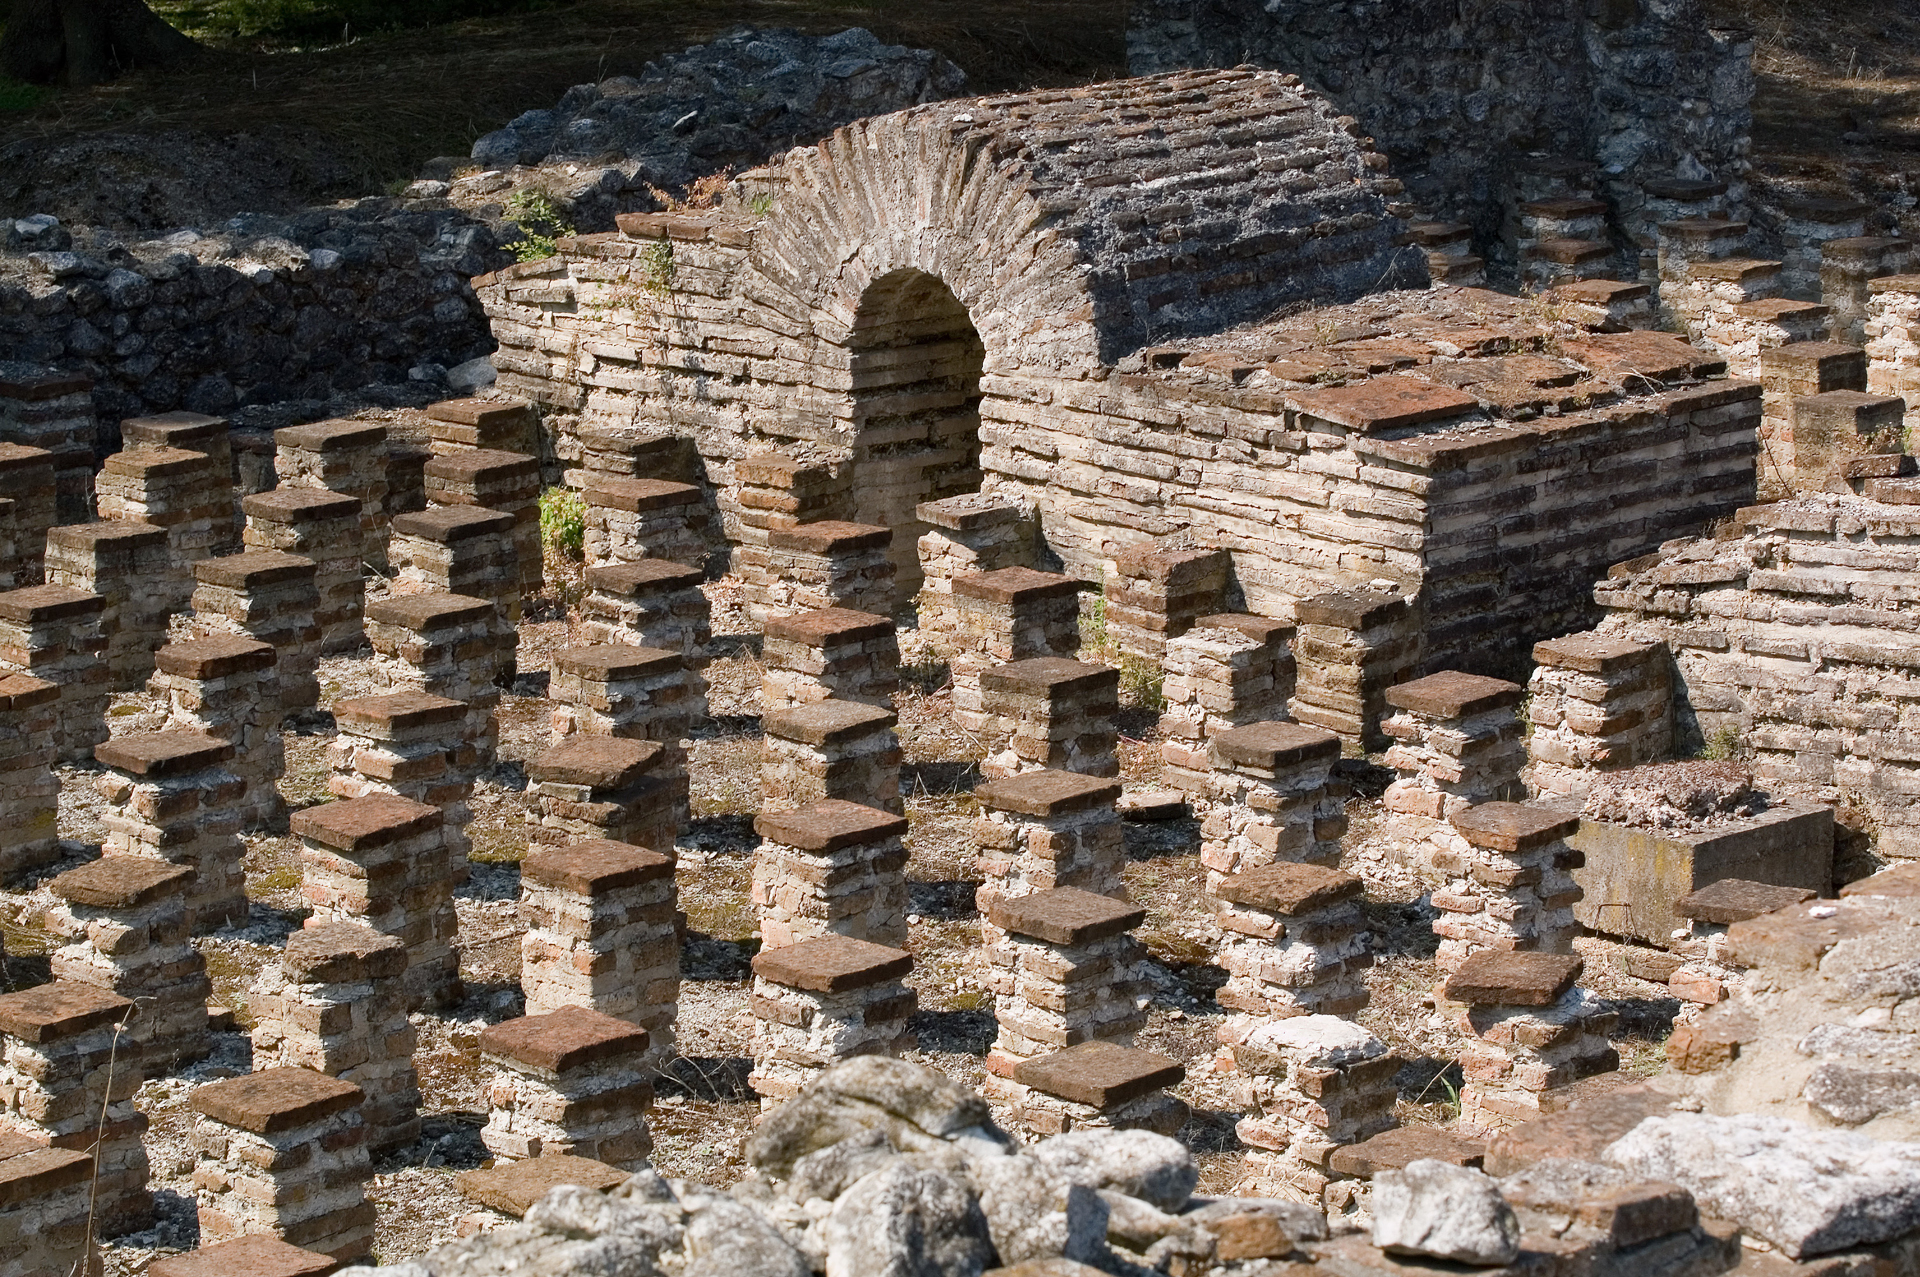 Dion Archaeological Site Thessaloniki and Central Macedonia, DION: THE HOLY CITY OF MACEDONIANS